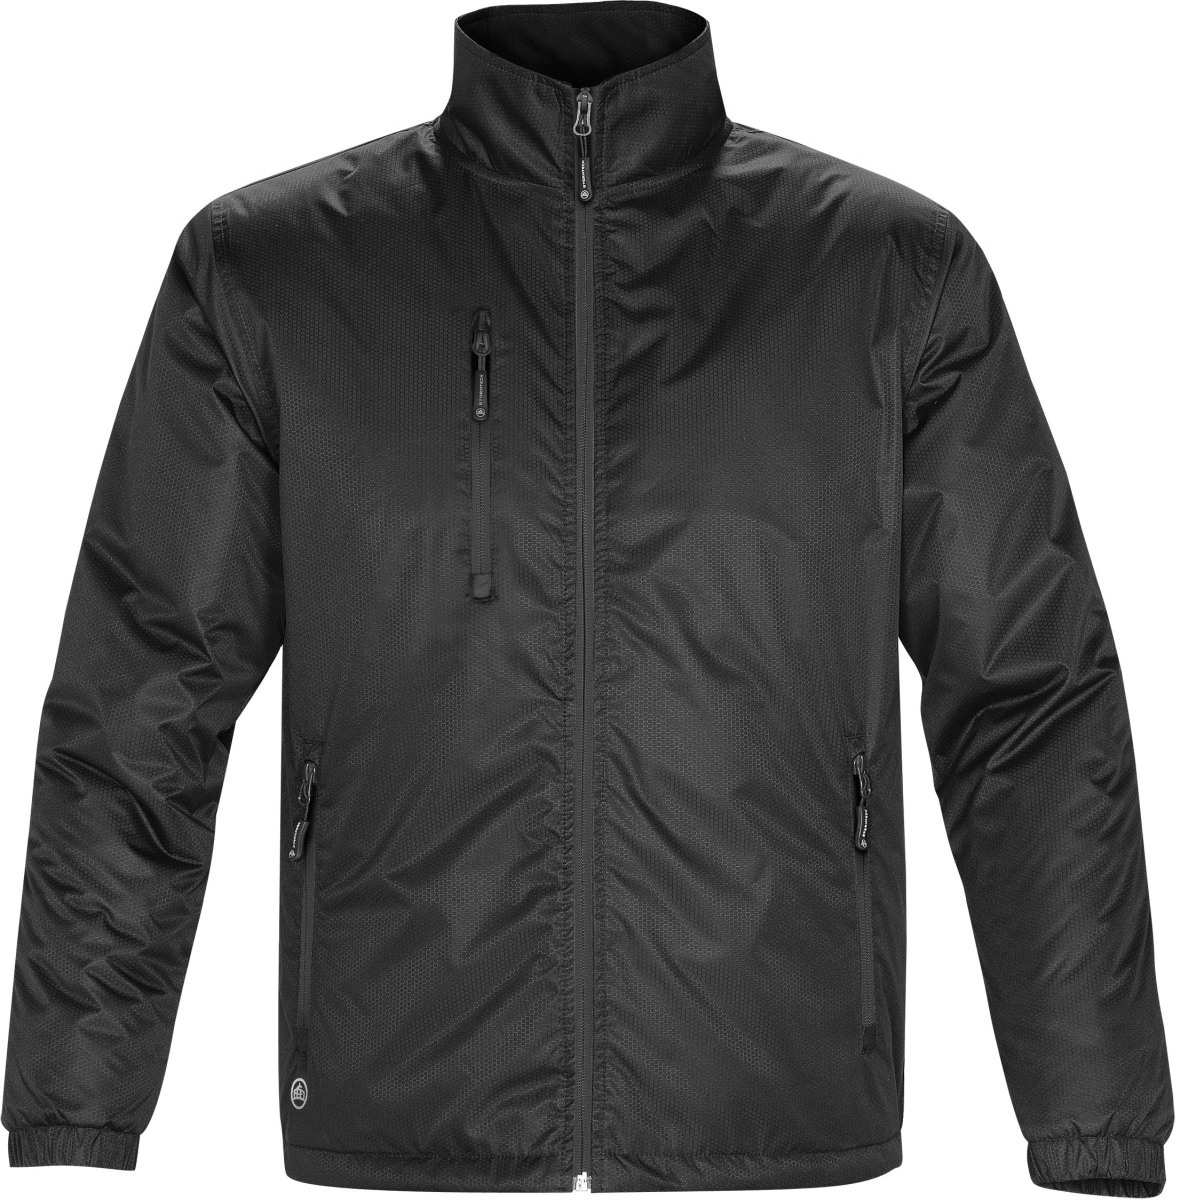 Men's Axis Thermal Jacket-StormTech